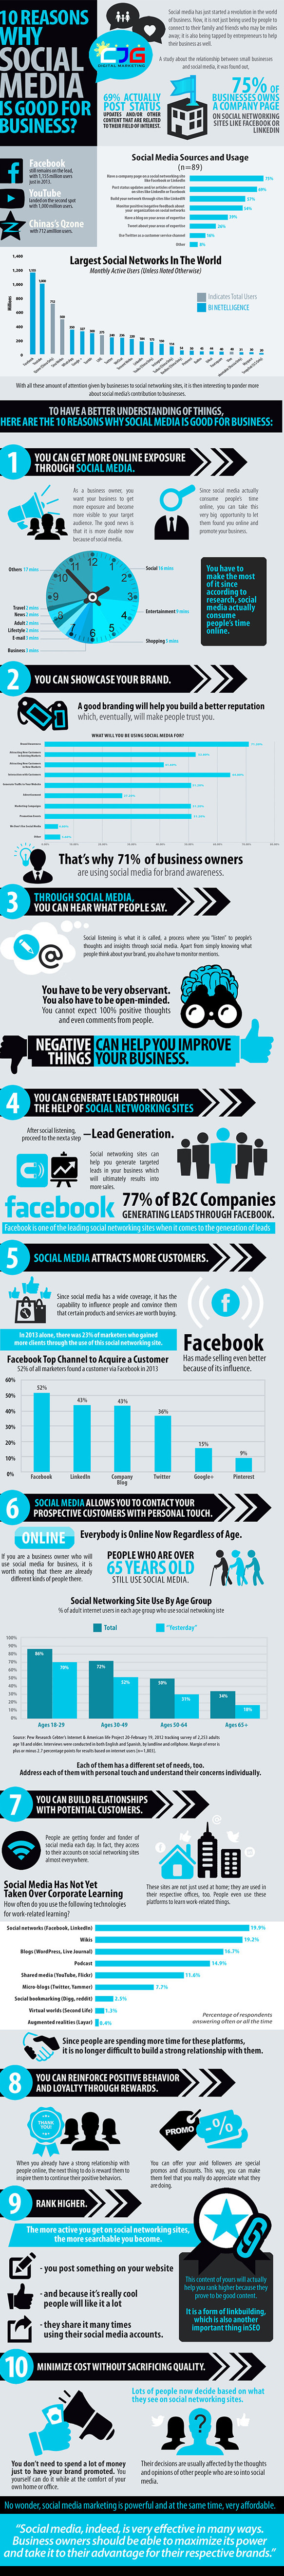 10-reasons-why-social-media-must-be-part-of-your-small-business-marketing-strategy1